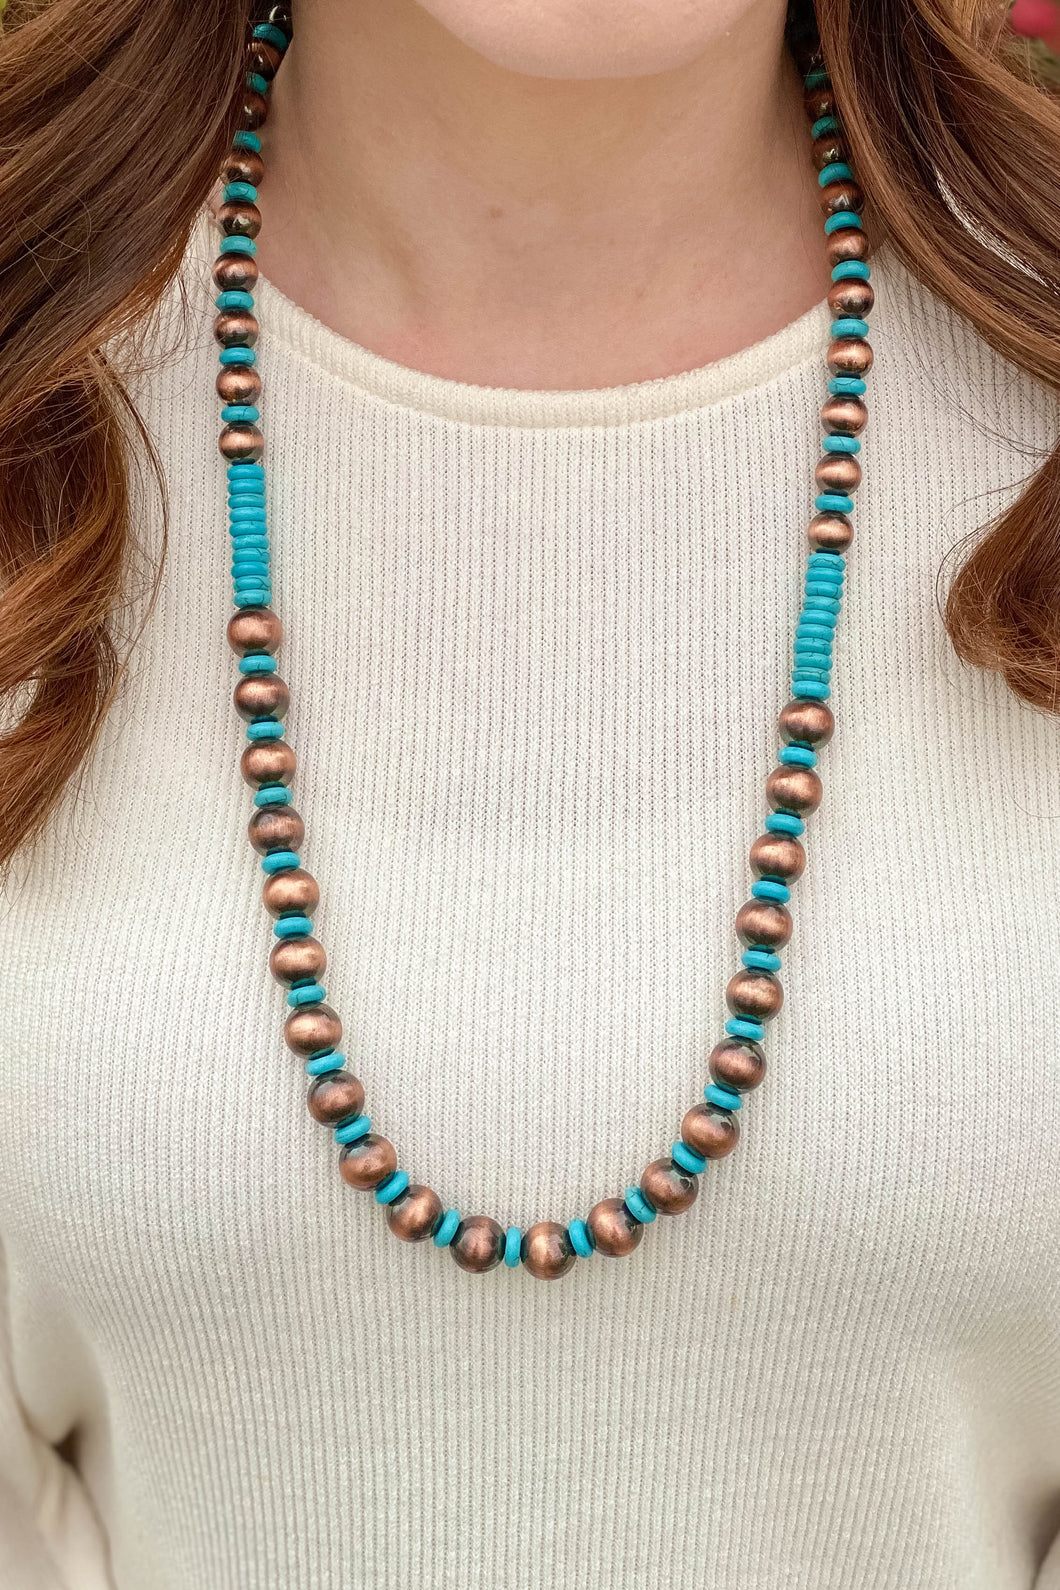 West & Co Copper and Turquoise Necklace